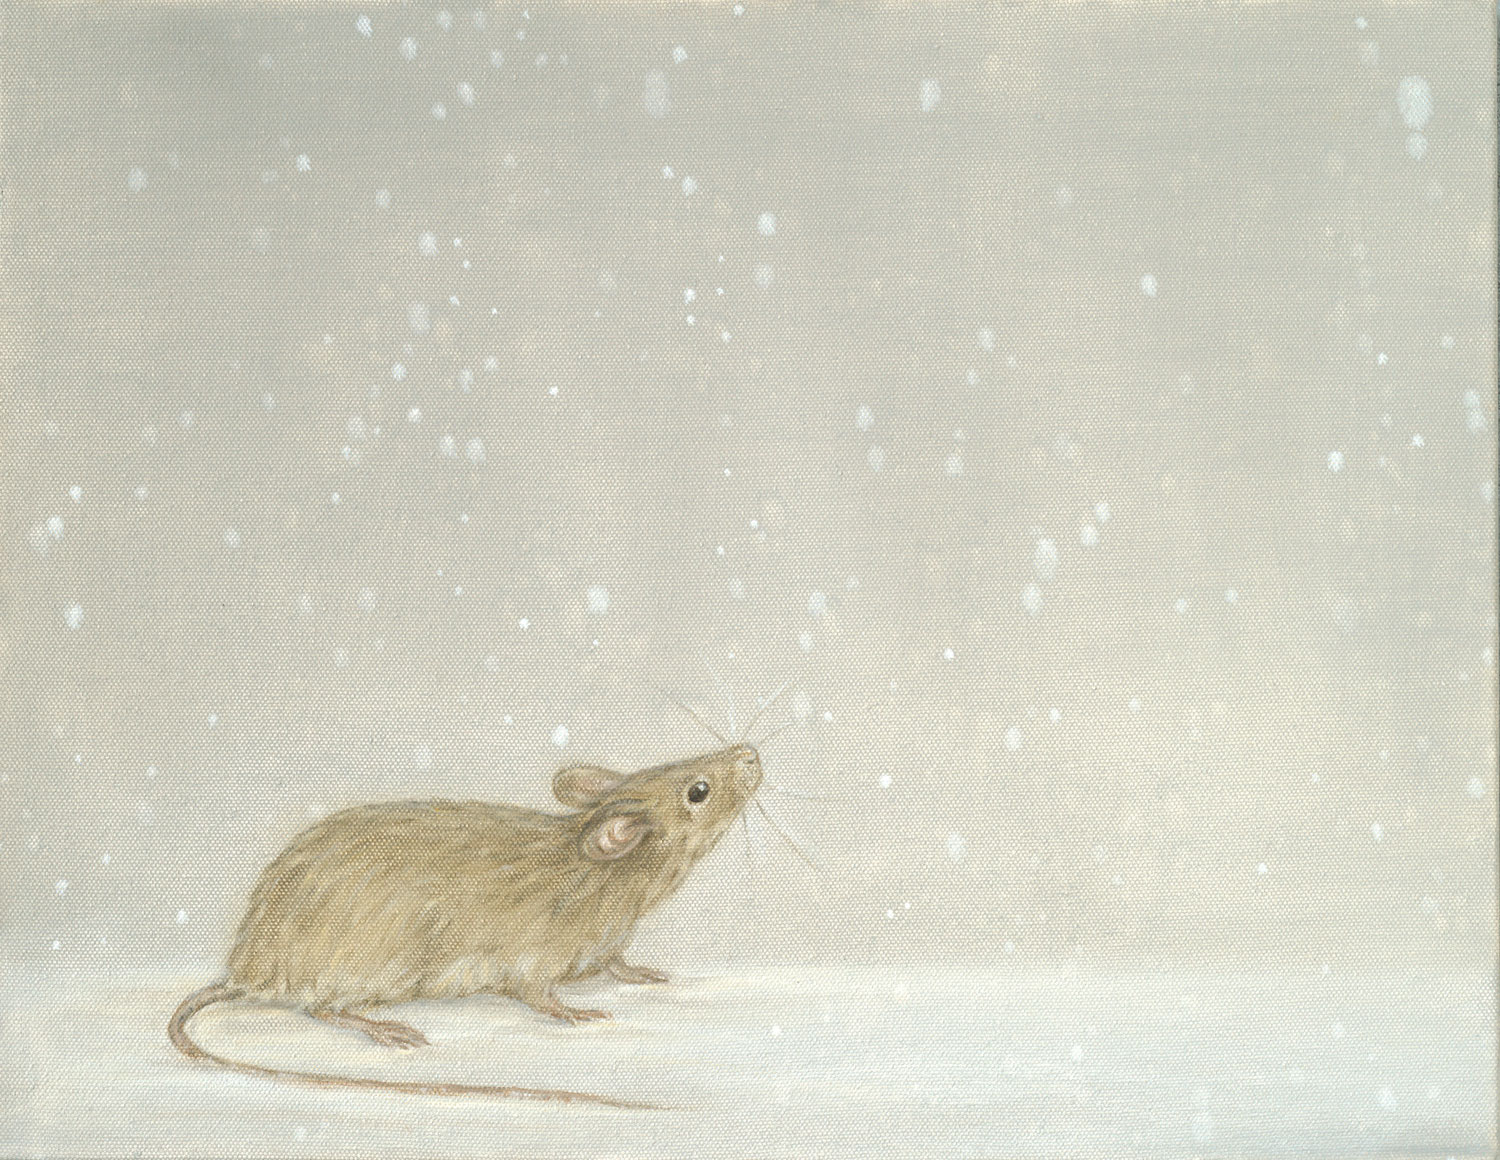 Mouse and Snow